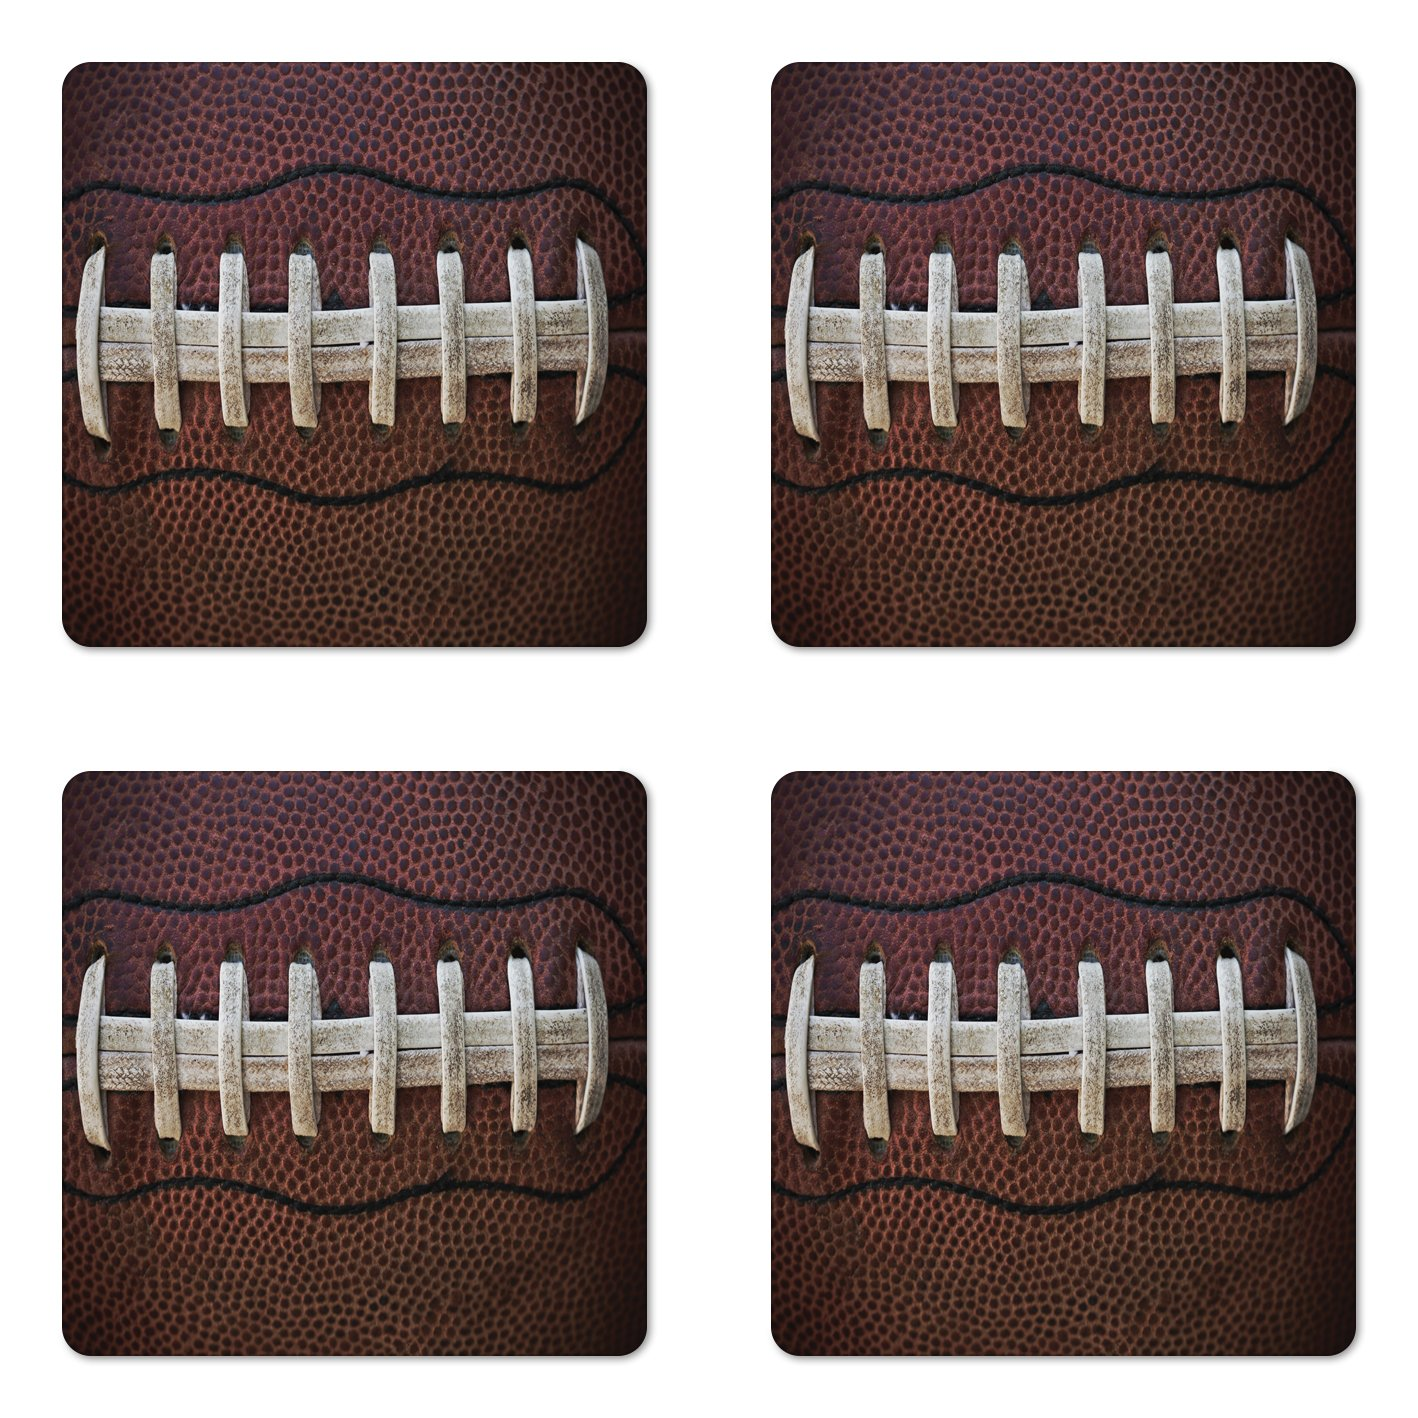 Lunarable Sports Coaster Set of Four, American Football Leather Laces Fun Traditional Sport Close Up Photo Print, Square Hardboard Gloss Coasters for Drinks, Dark Brown Beige